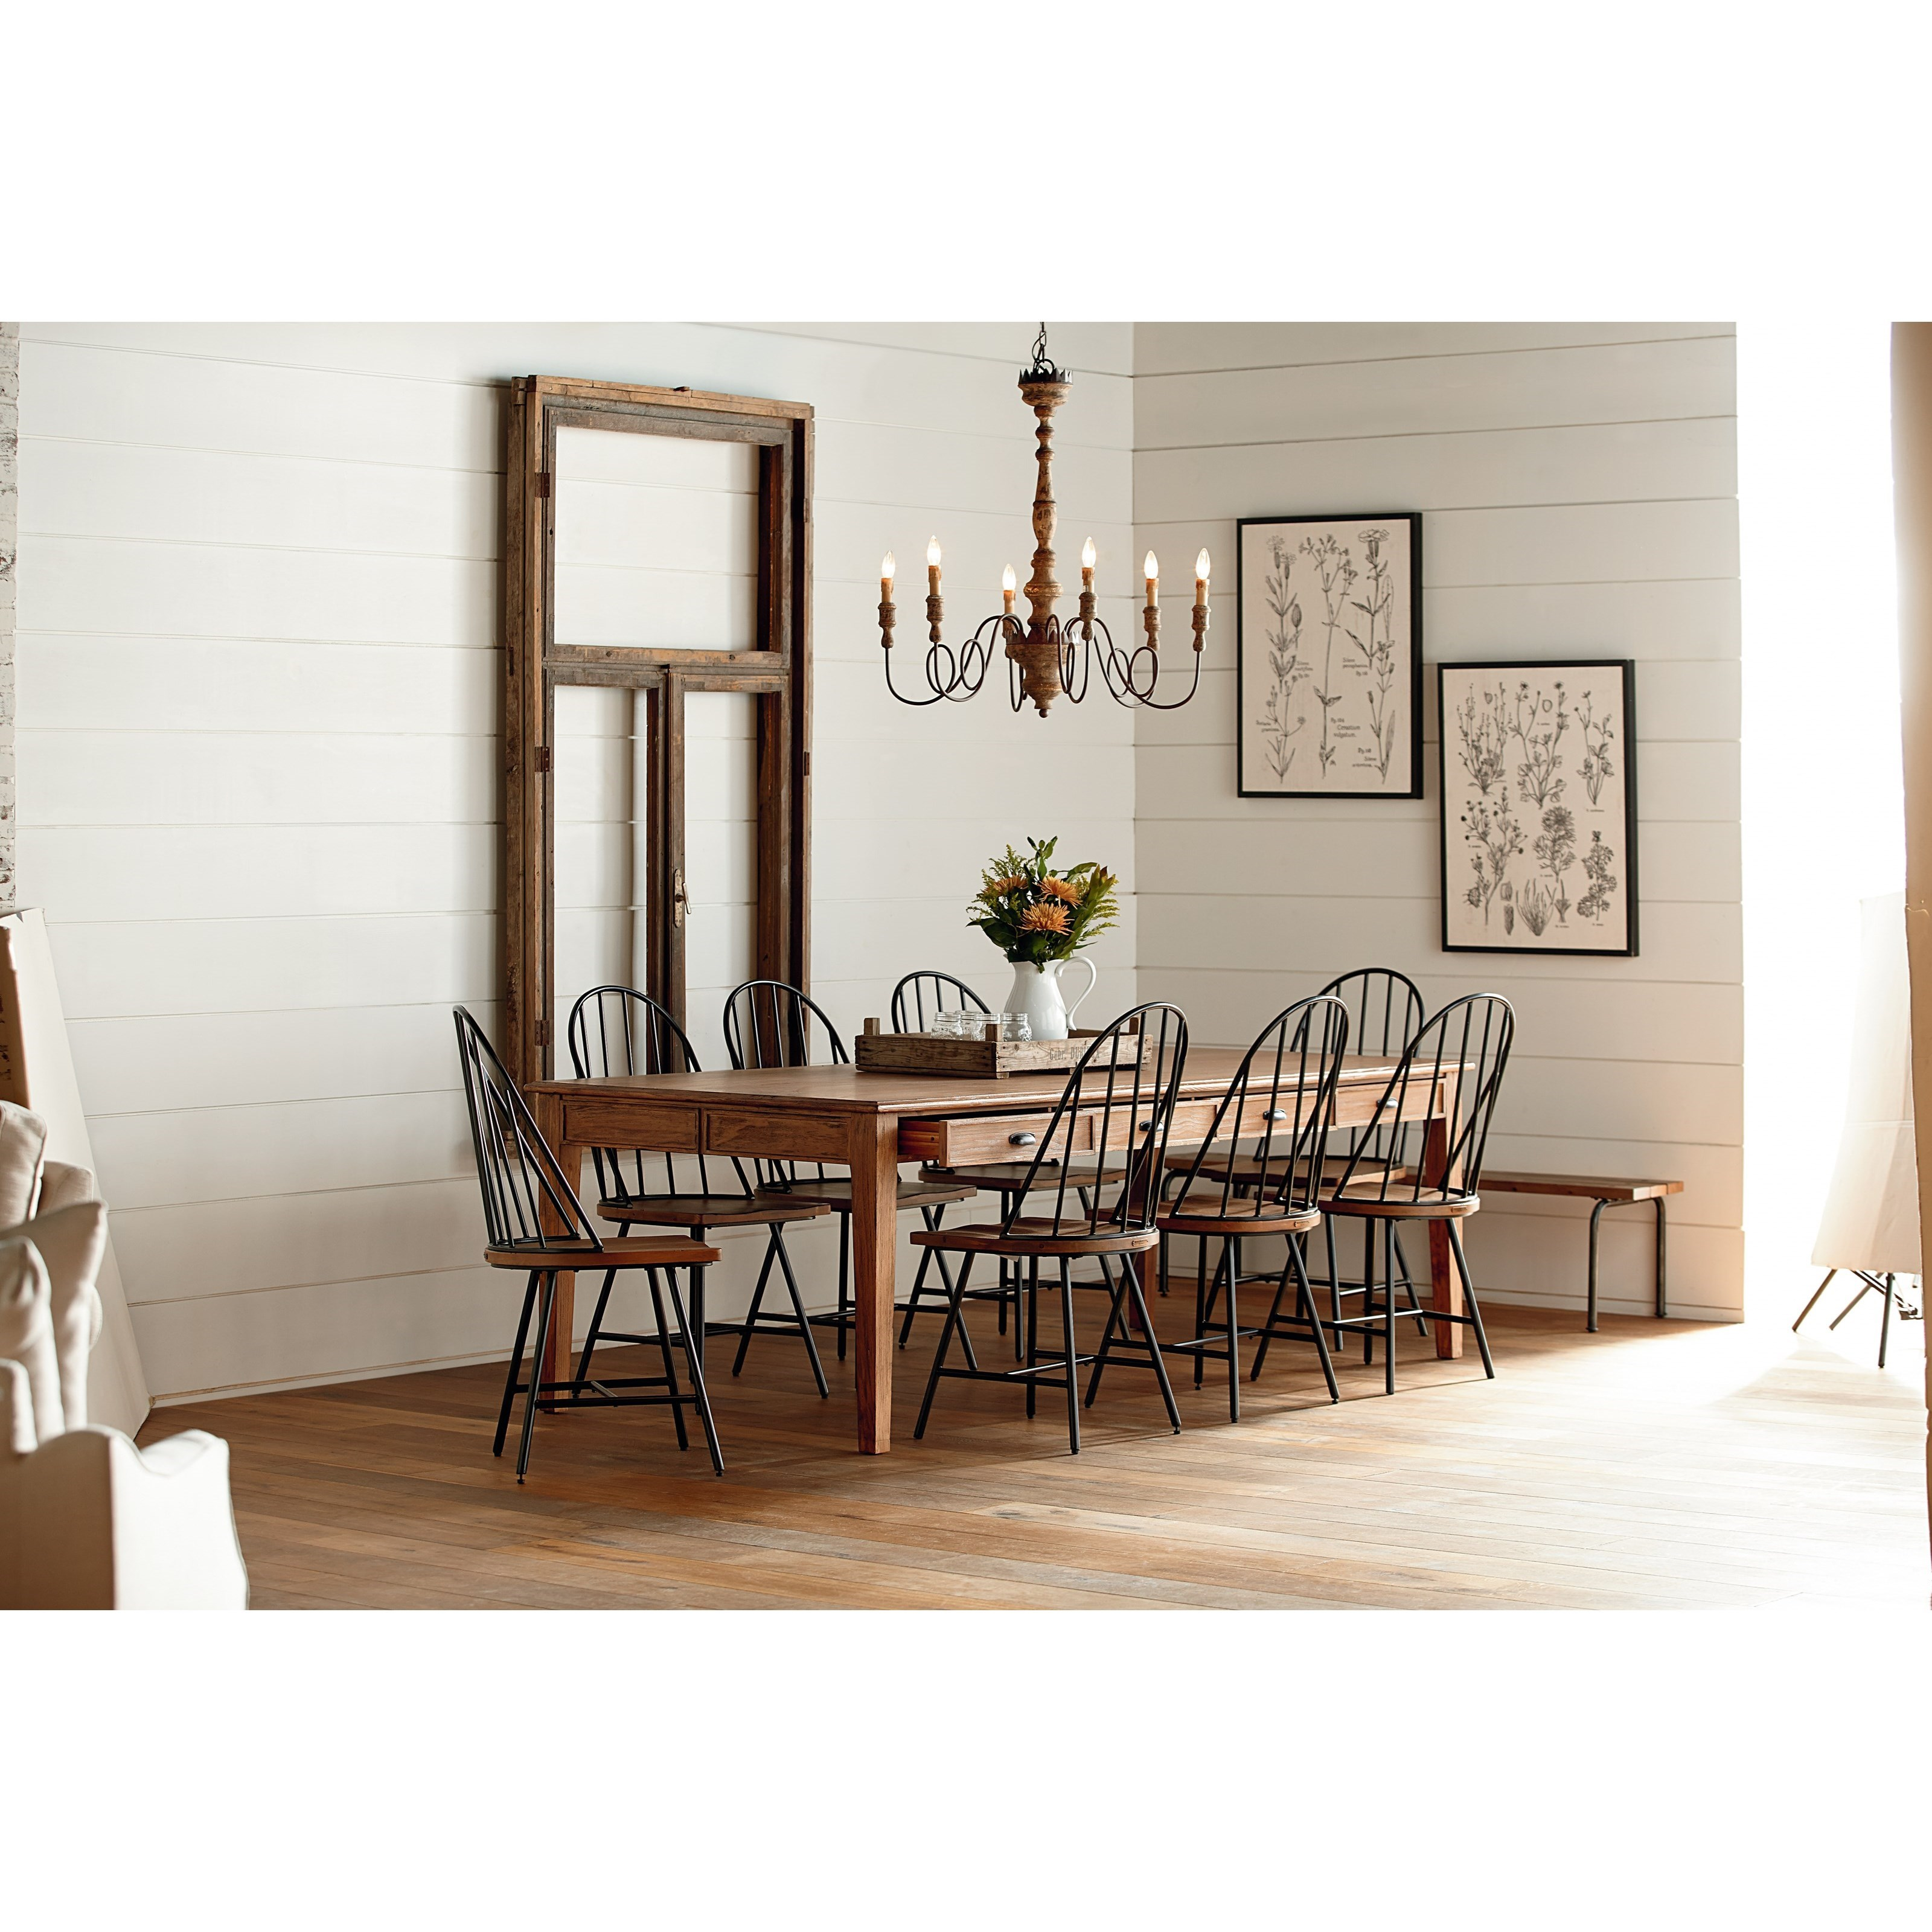 Magnolia home by joanna gaines farmhouse 10 piece dining for 10 piece dining room table sets